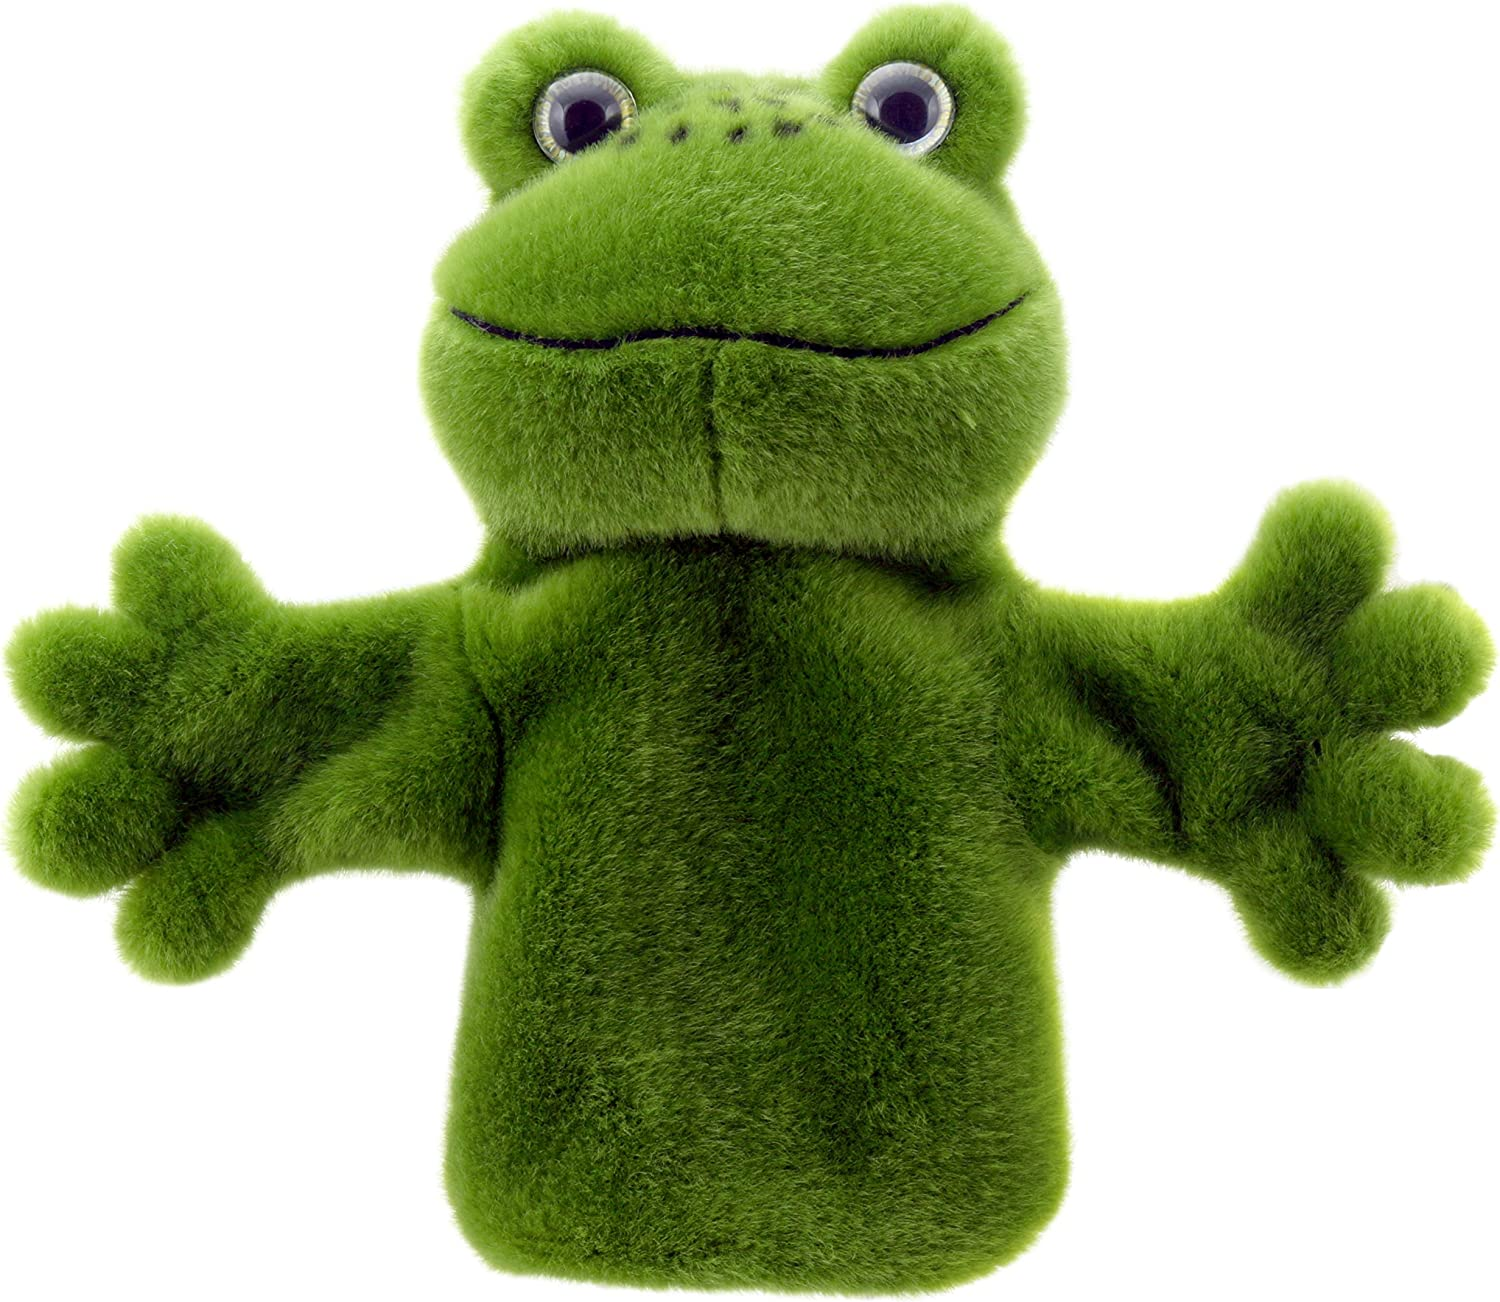 The Puppet Company CarPets Frog Hand Puppet